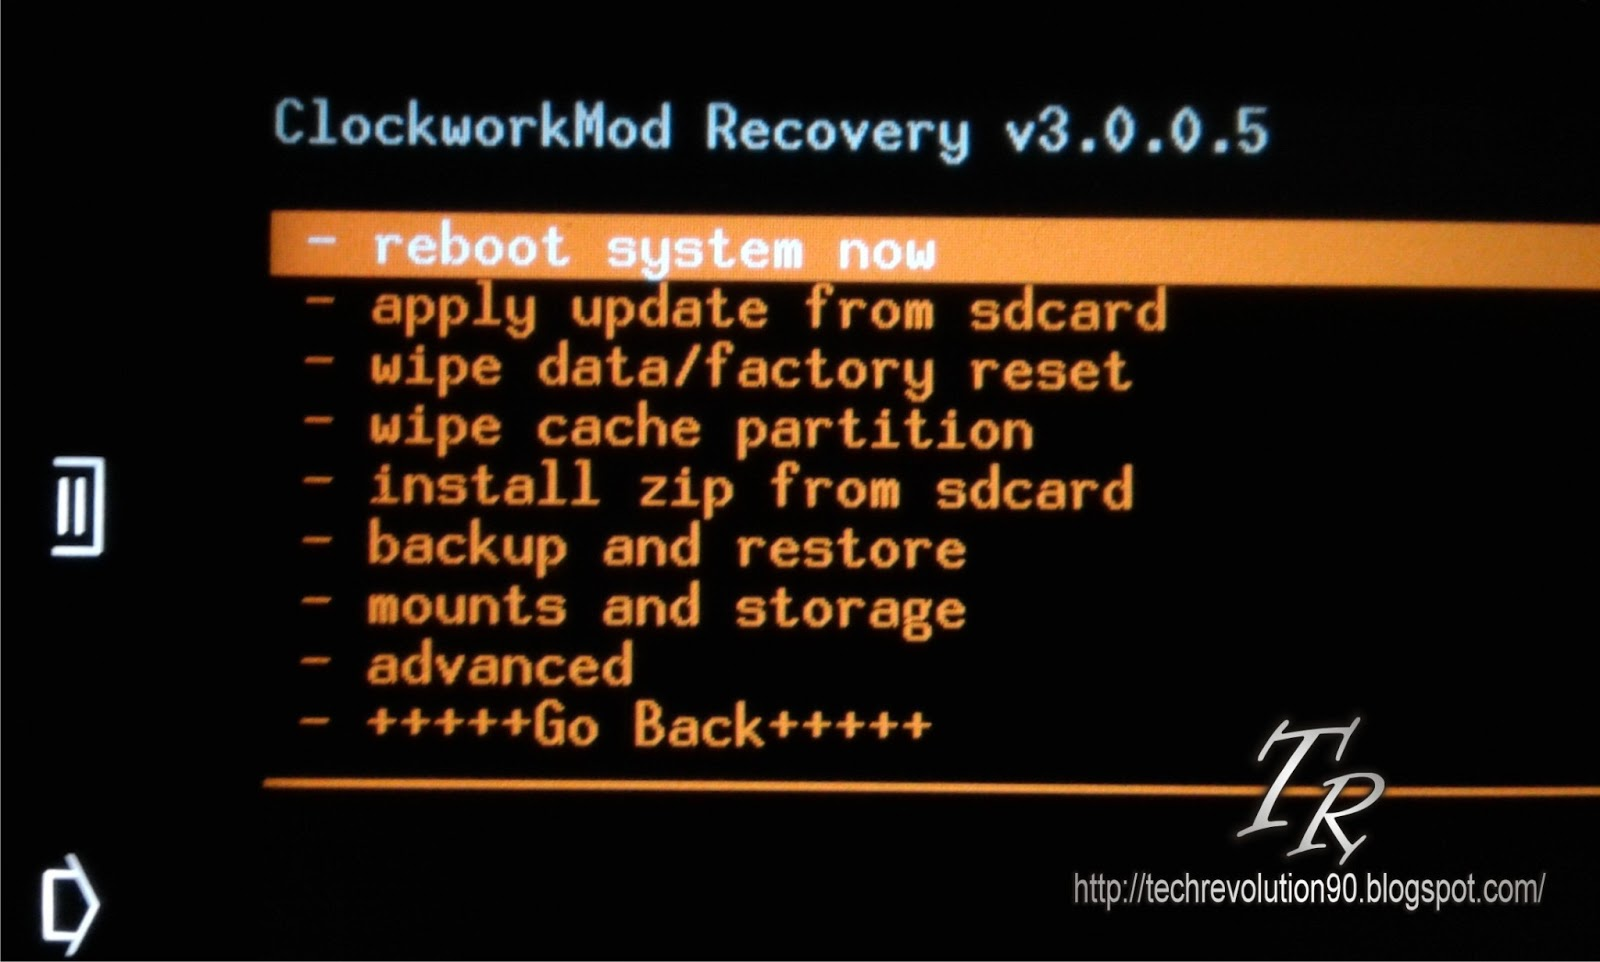 clockworkmod recovery download galaxy tab p1000